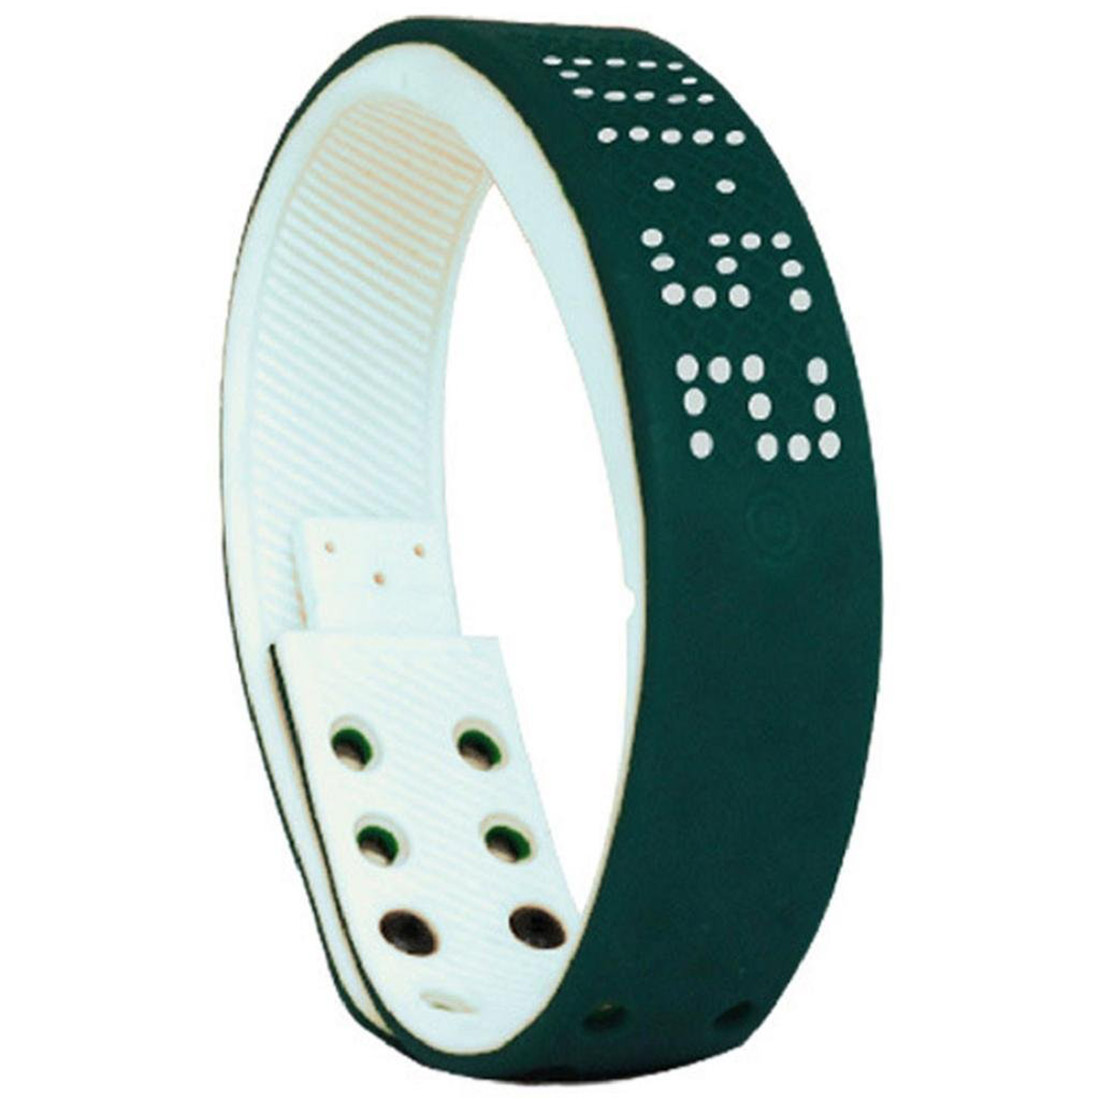 TW2 Smart Watch Bluetooth Smart Bracelet Monitor for iOS Android A